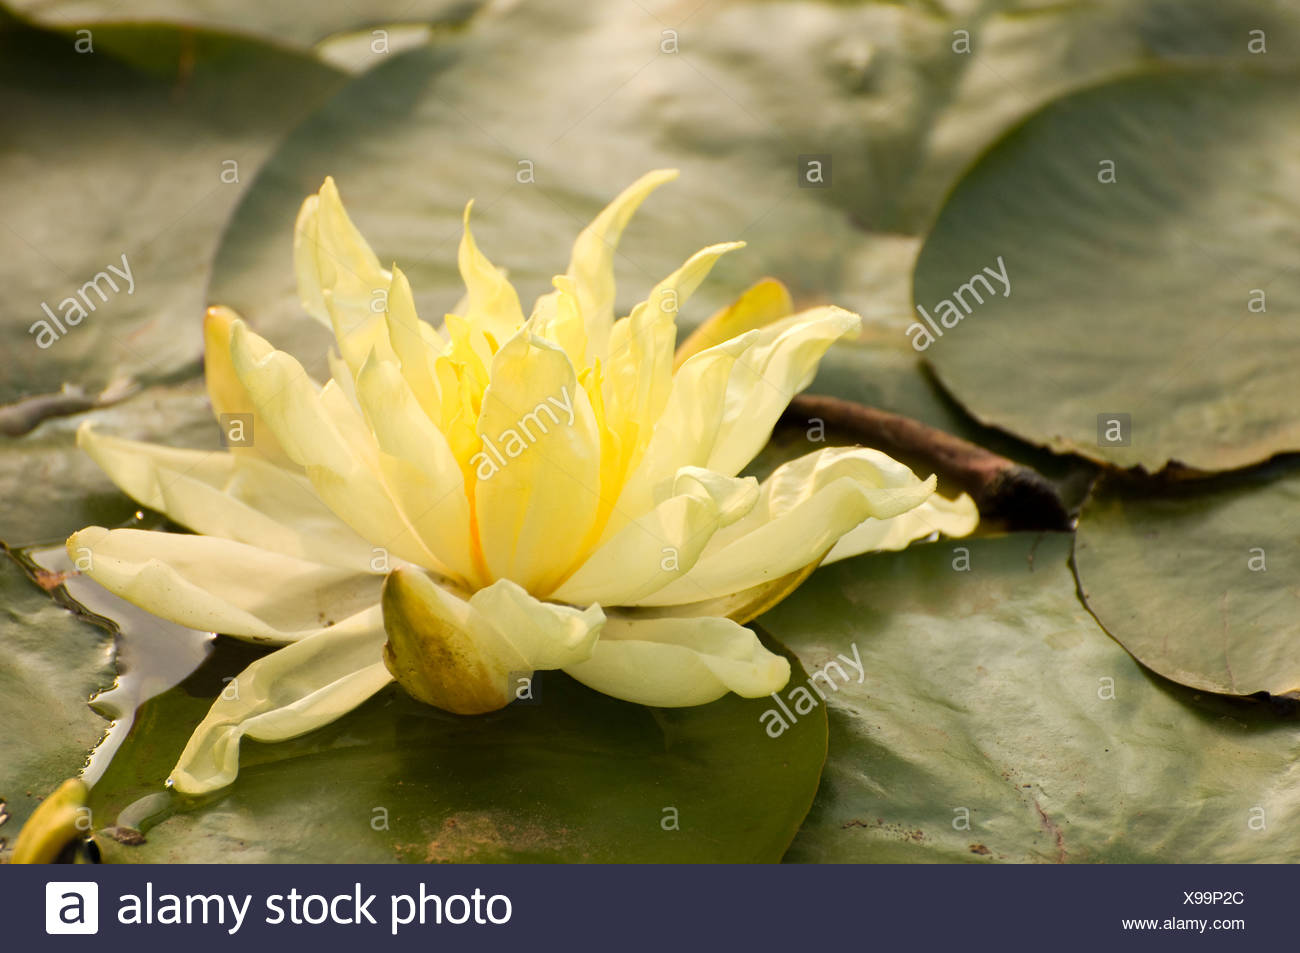 Close Up Of Yellow Lotus Flower Stock Photo 281112676 Alamy